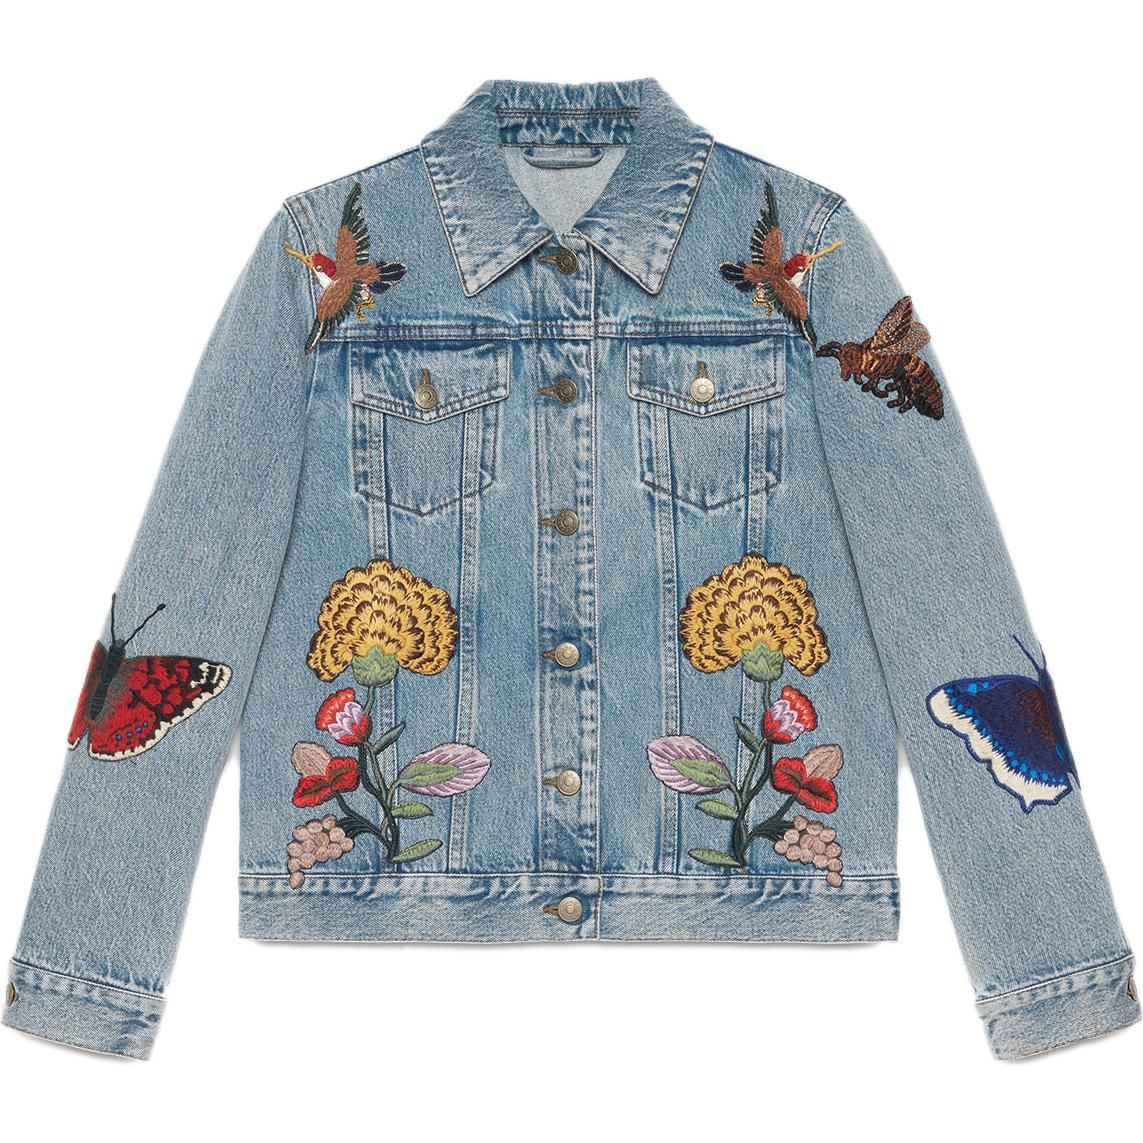 Gucci Embroidered Denim Jacket as seen on Beyonce Knowles